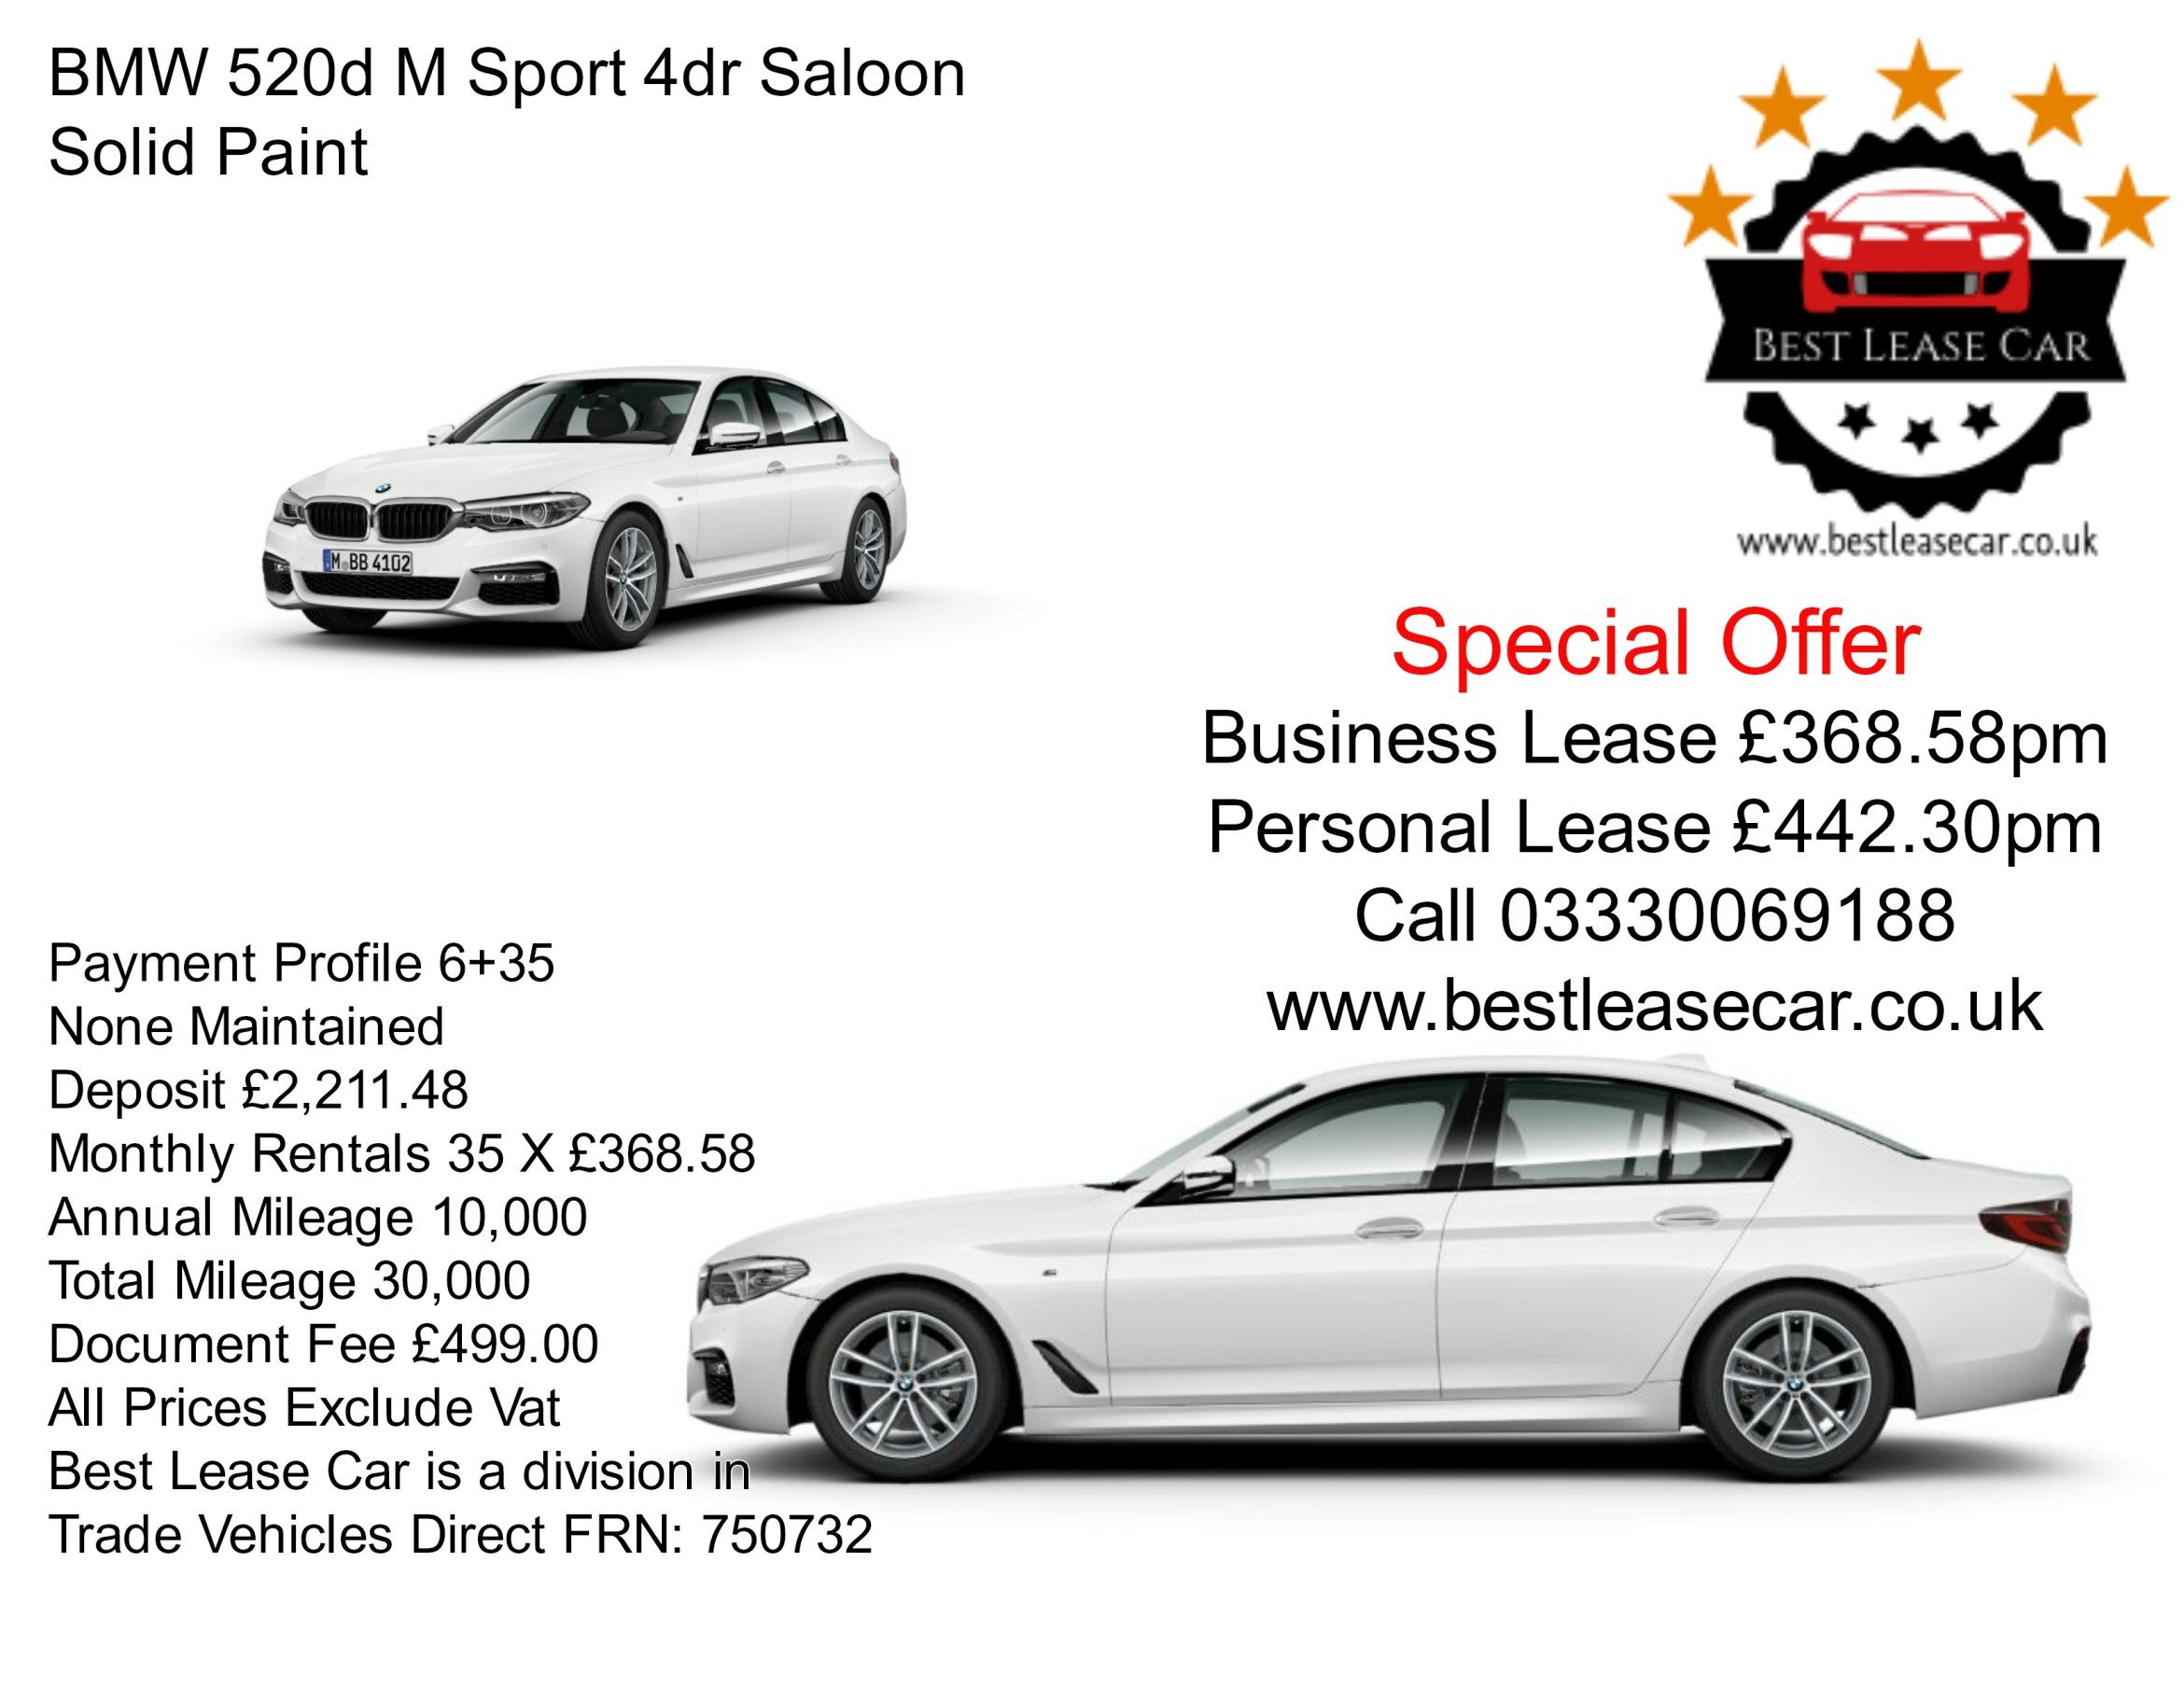 Can You Trade In A Leased Vehicle For Another Car